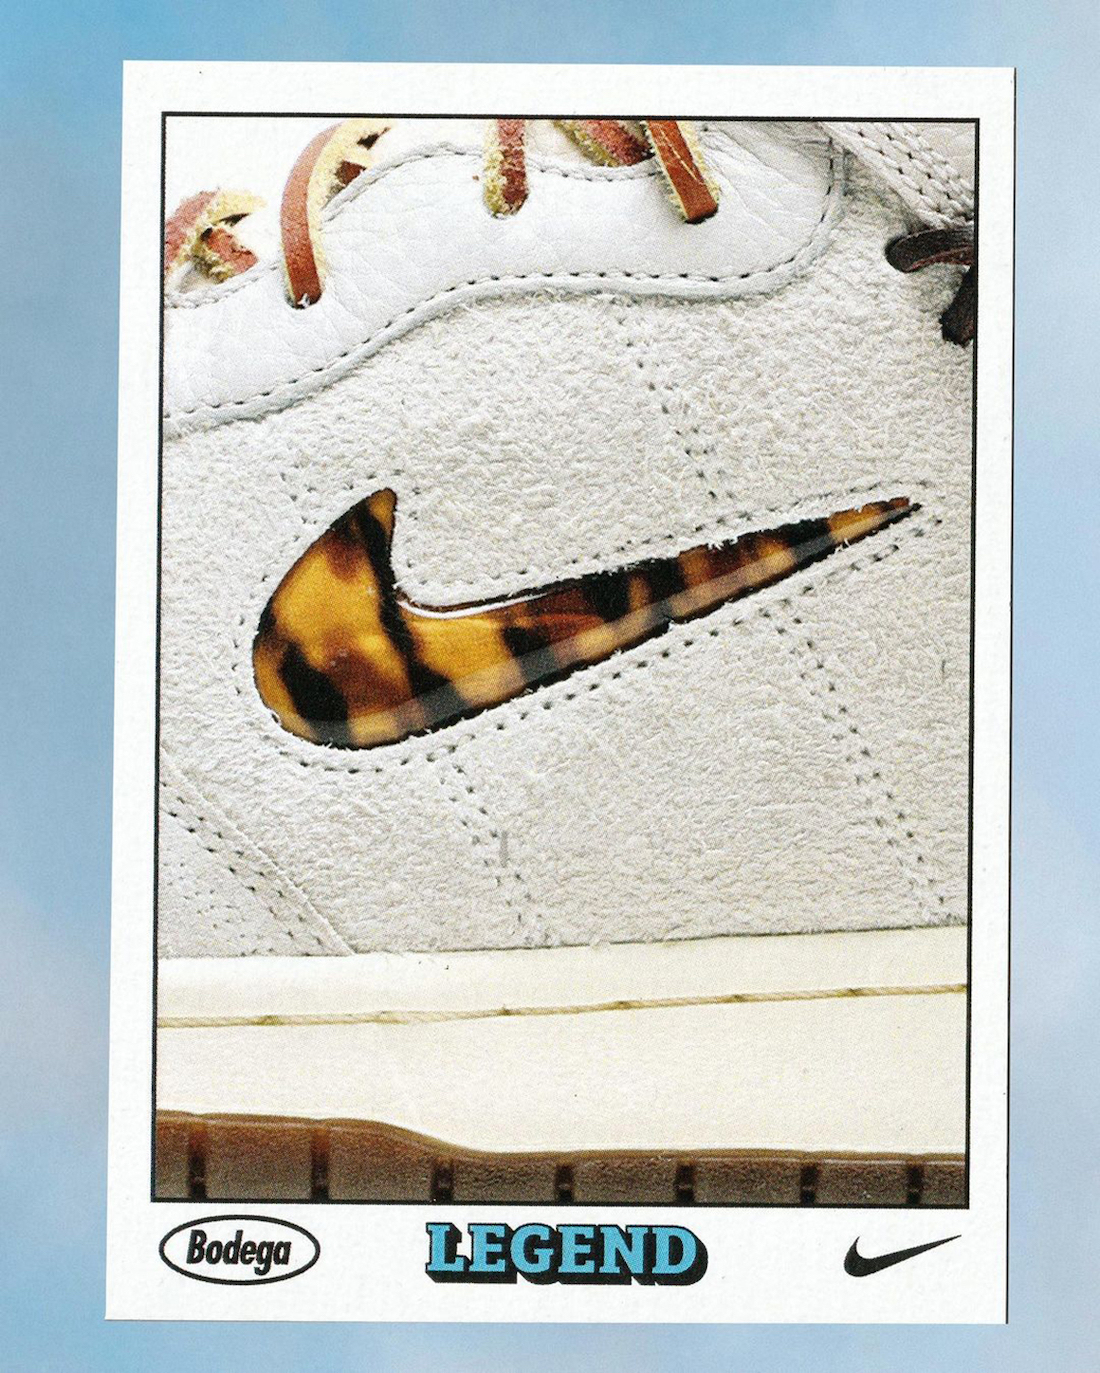 Bodega Nike Dunk High Friends and Family CZ8125-100 Release Date